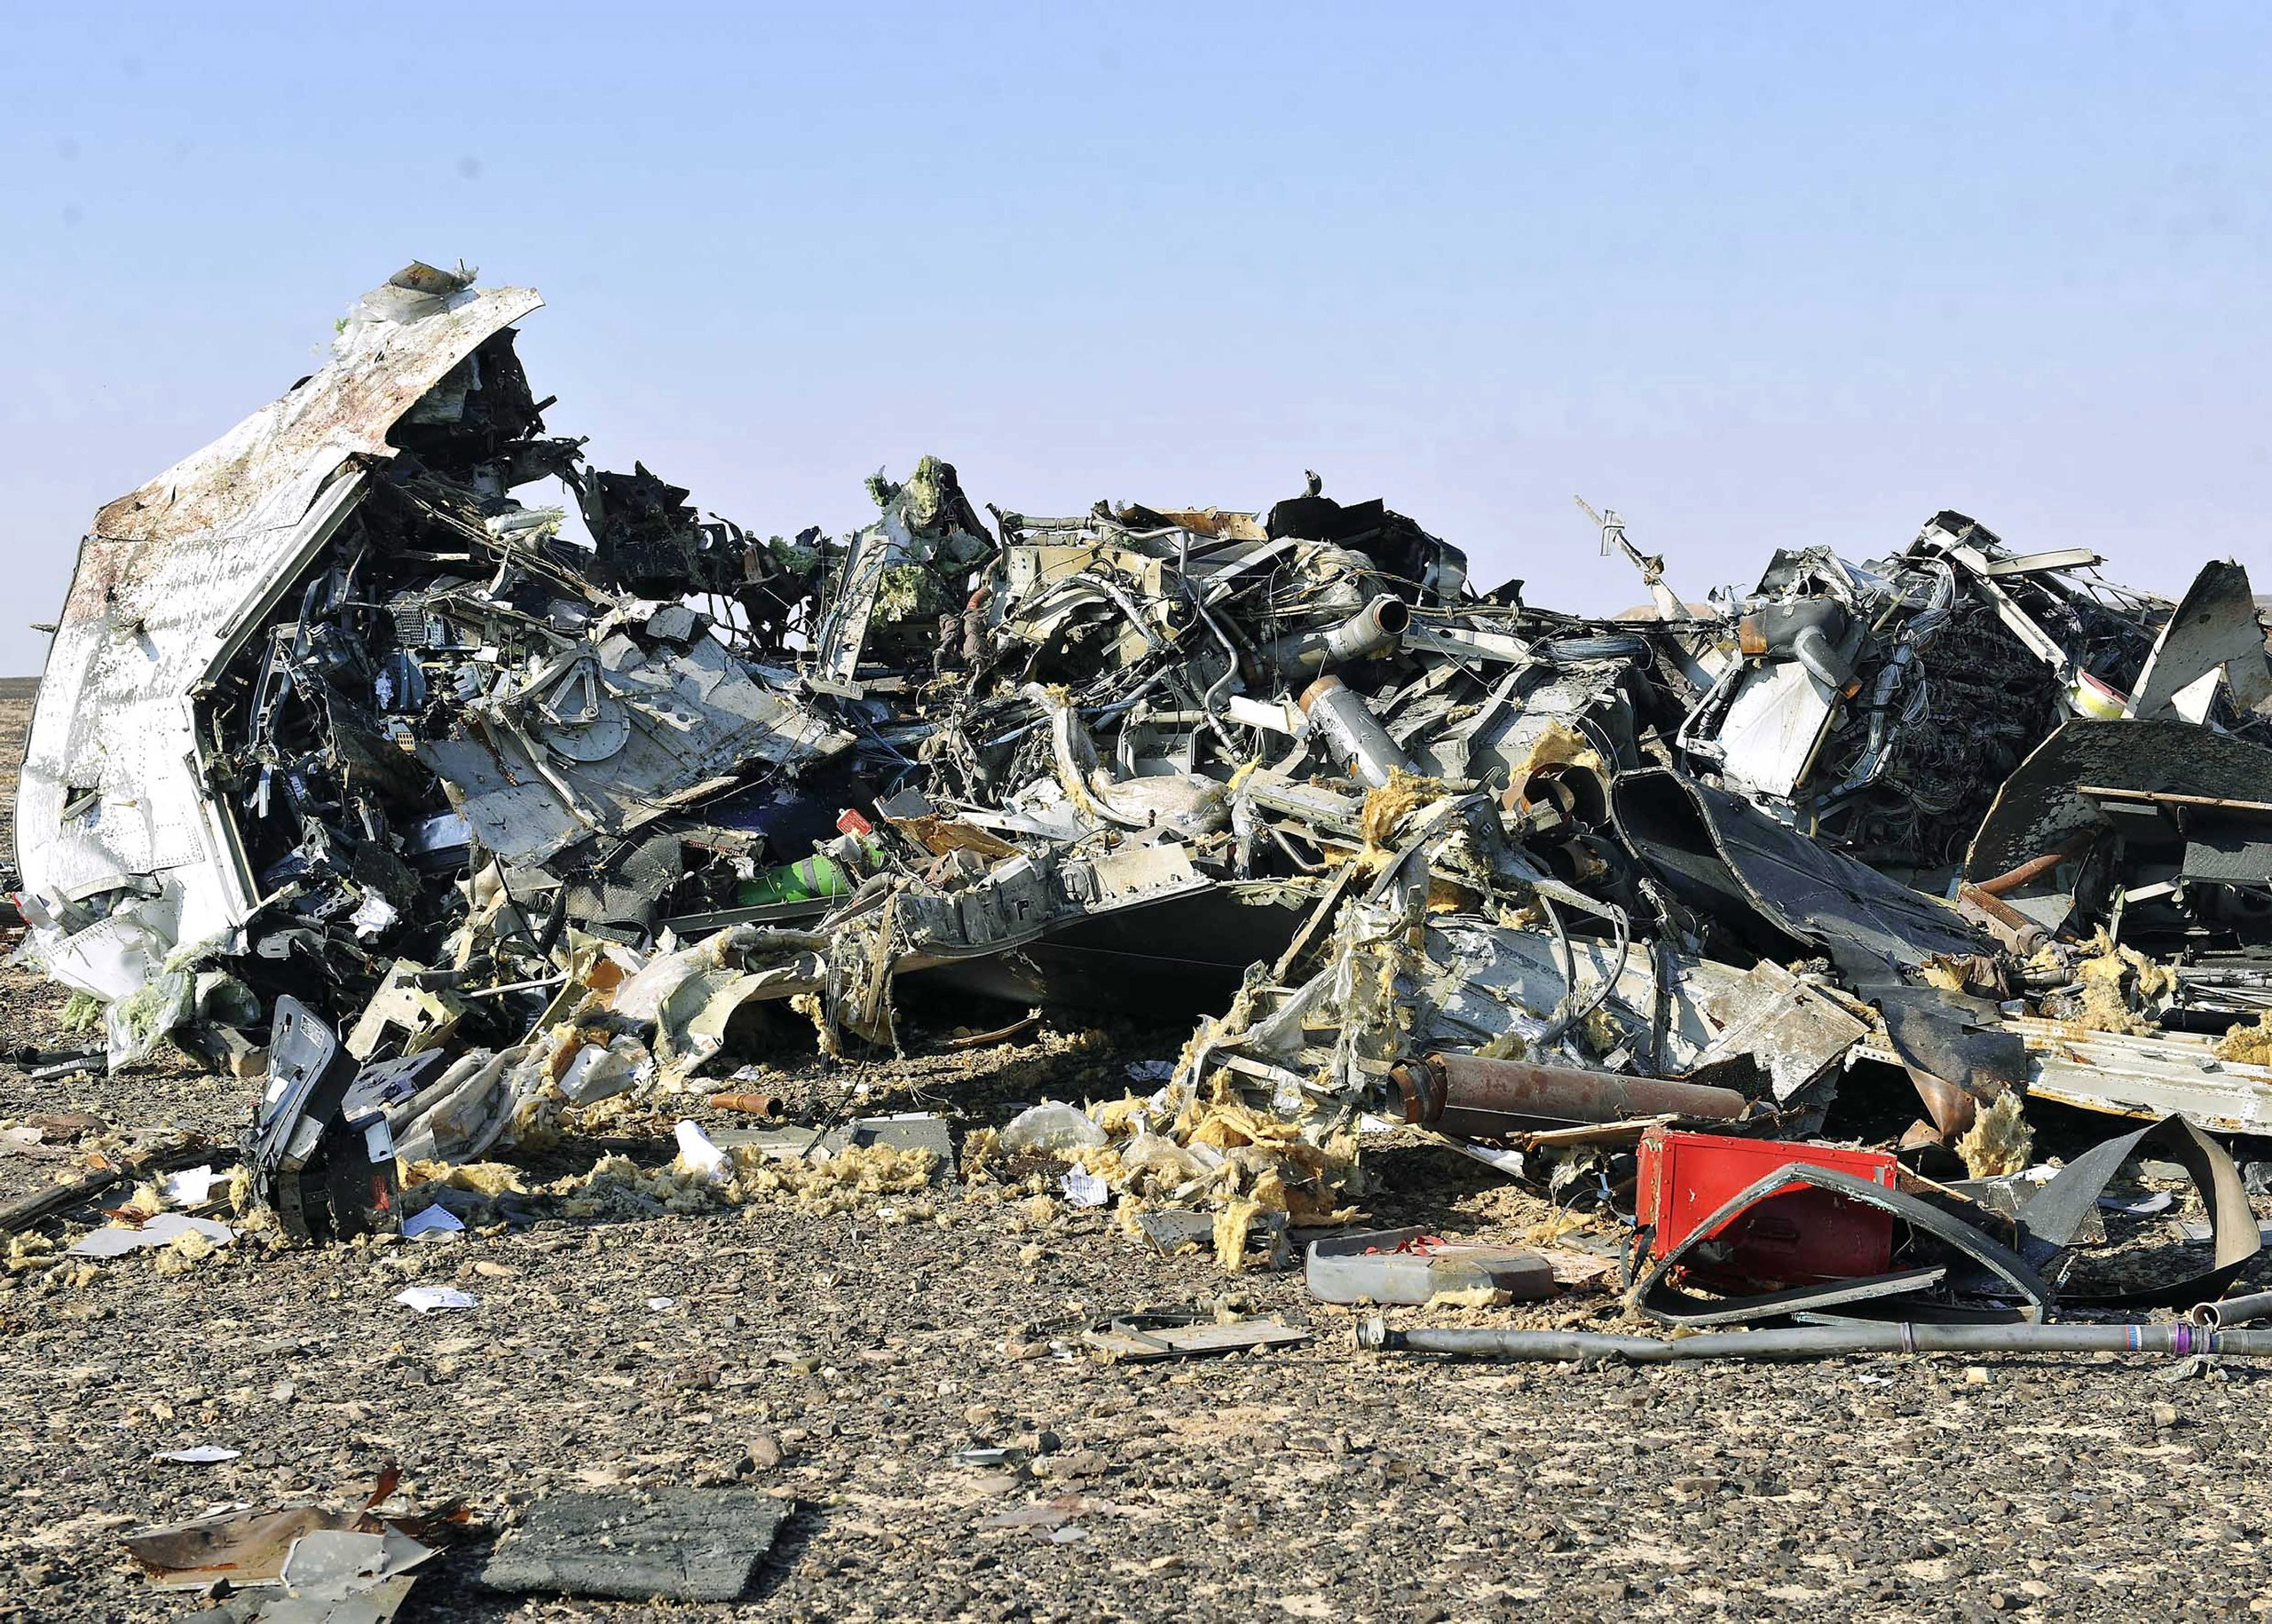 Debris from crashed Russian jet lies strewn across the sand at the site of the crash in the Sinai region in Egypt on Oct. 31, 2015.